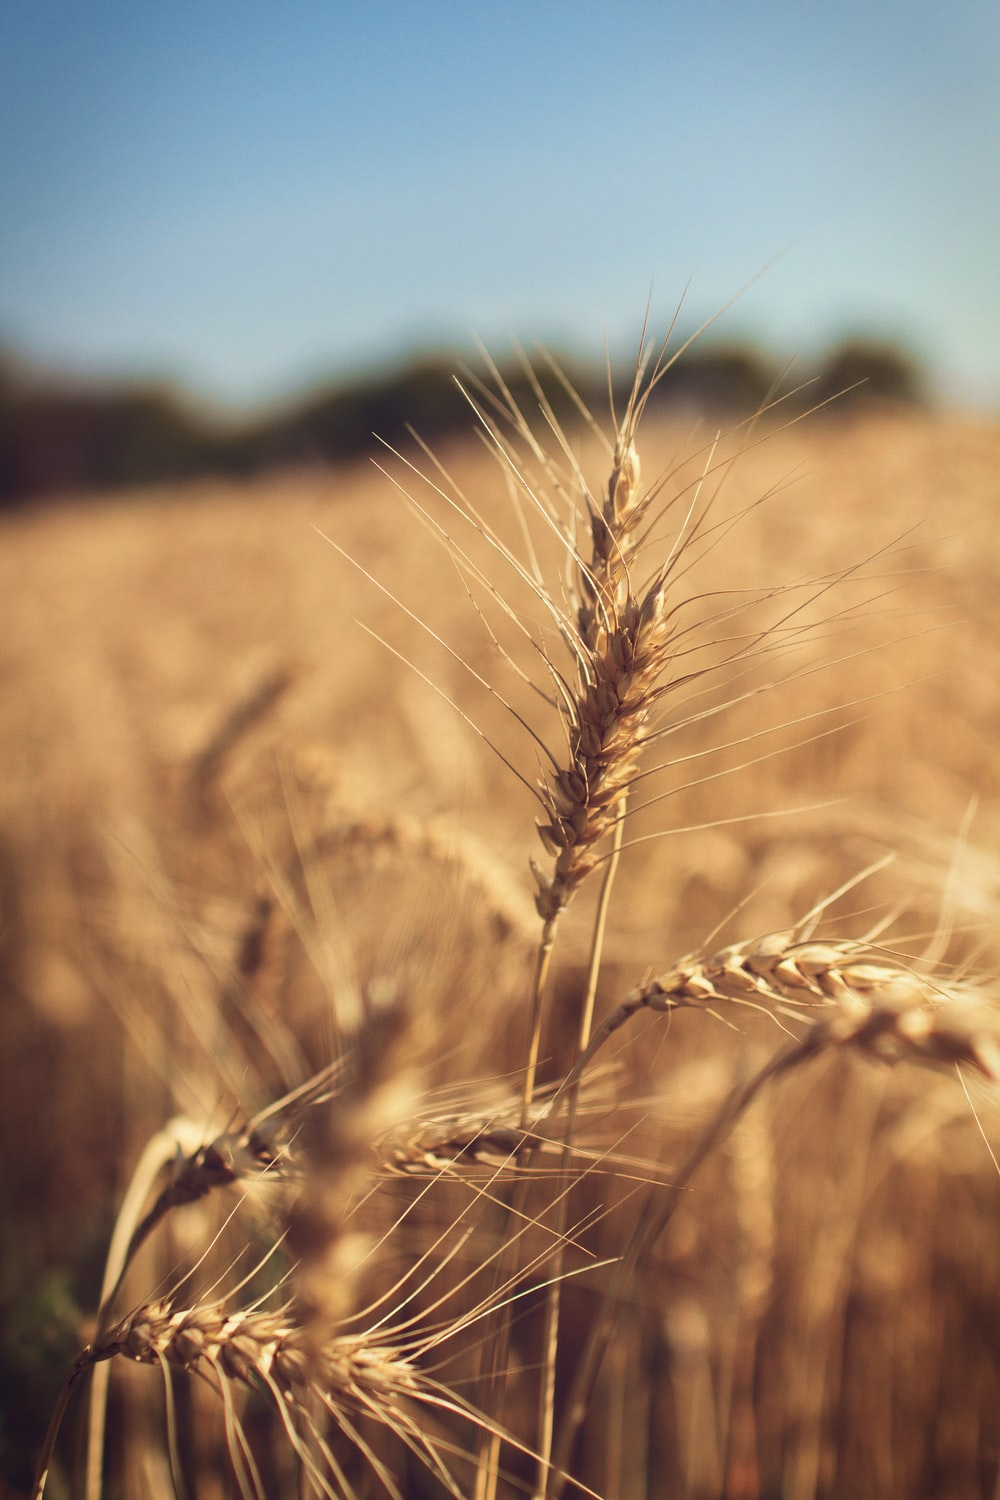 wheat pictures download free images on unsplash